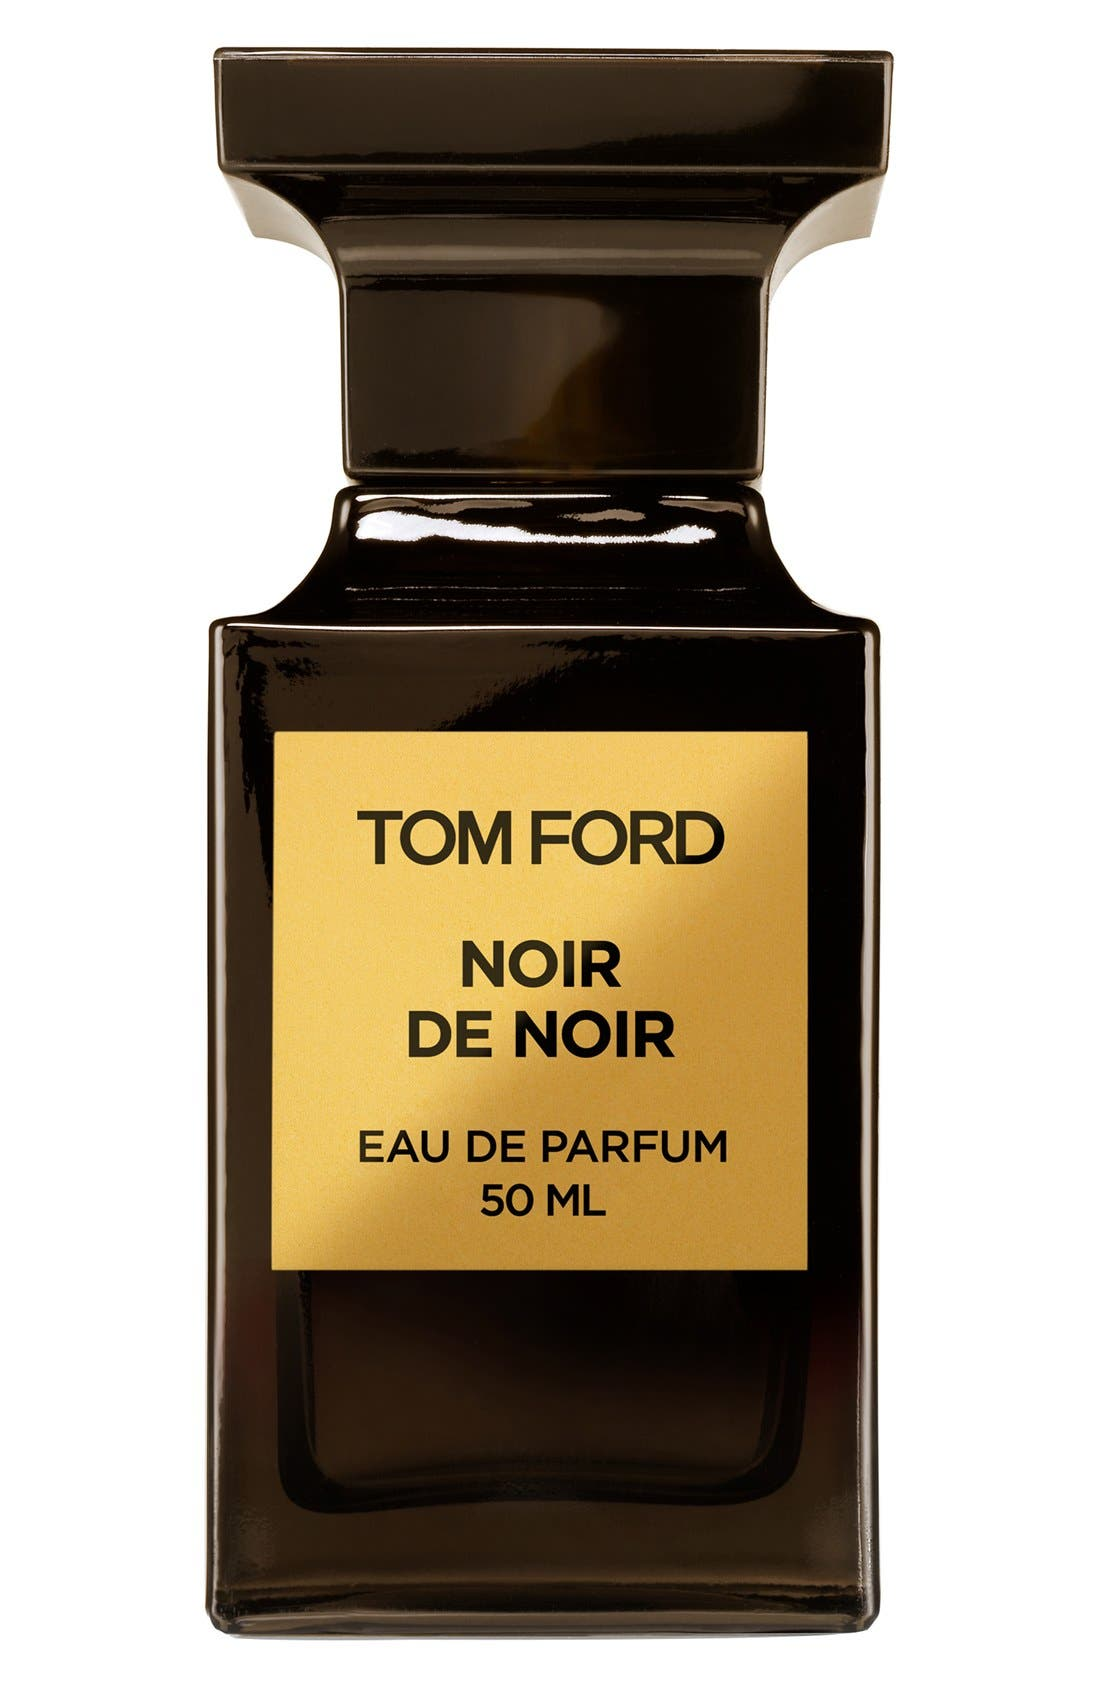 Tom Ford Private Blend Noir de Noir Eau de Parfum